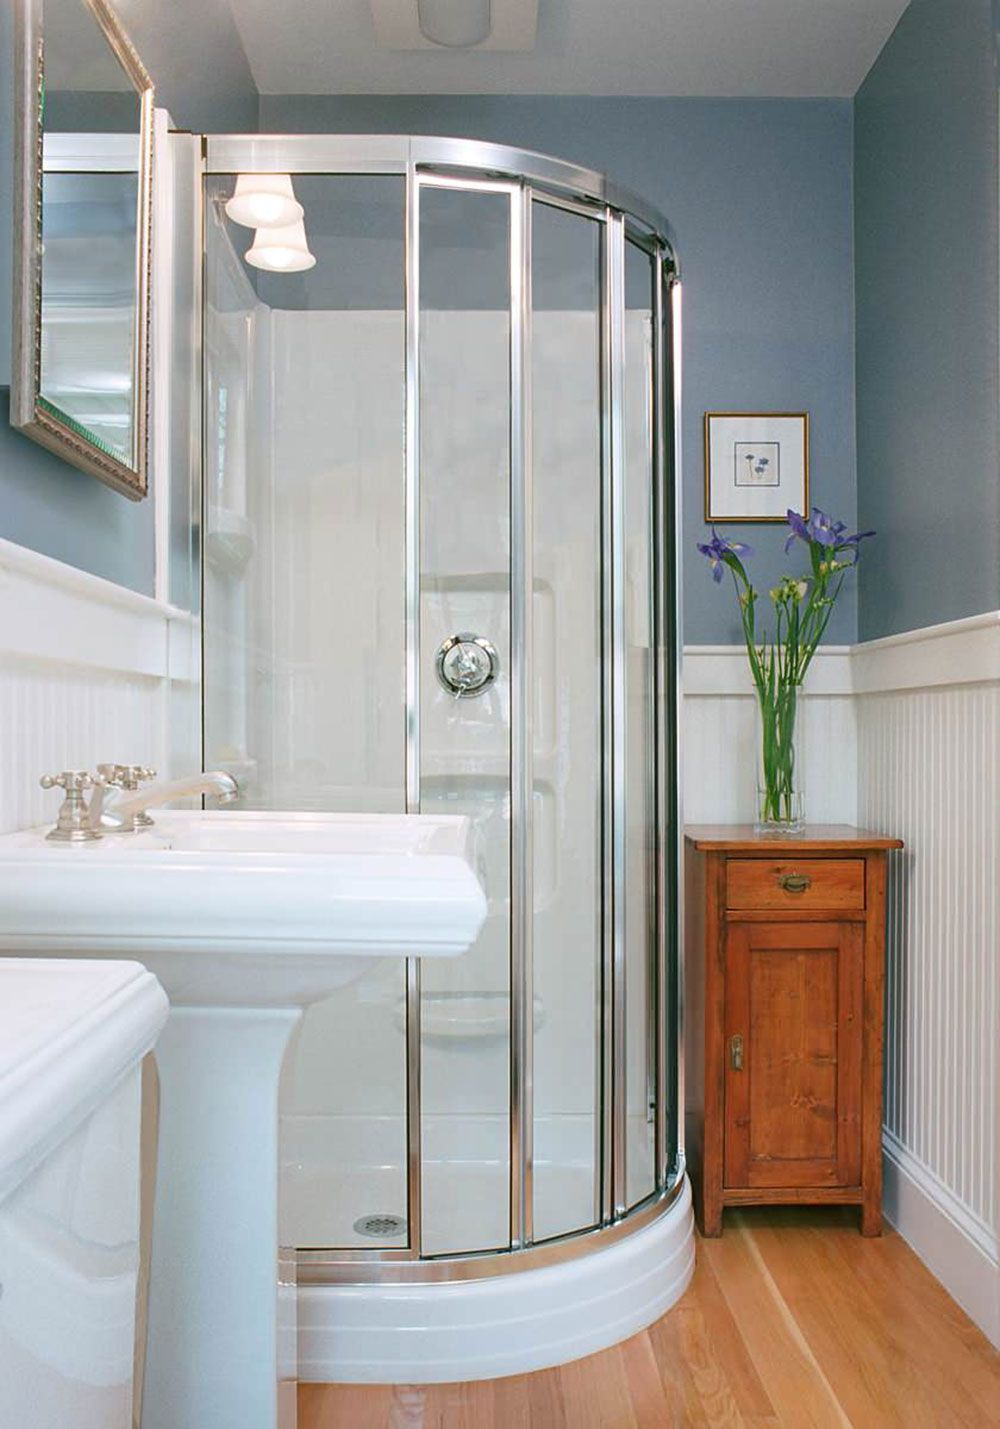 How To Make A Small Bathroom Look Bigger - Tips and Ideas ...